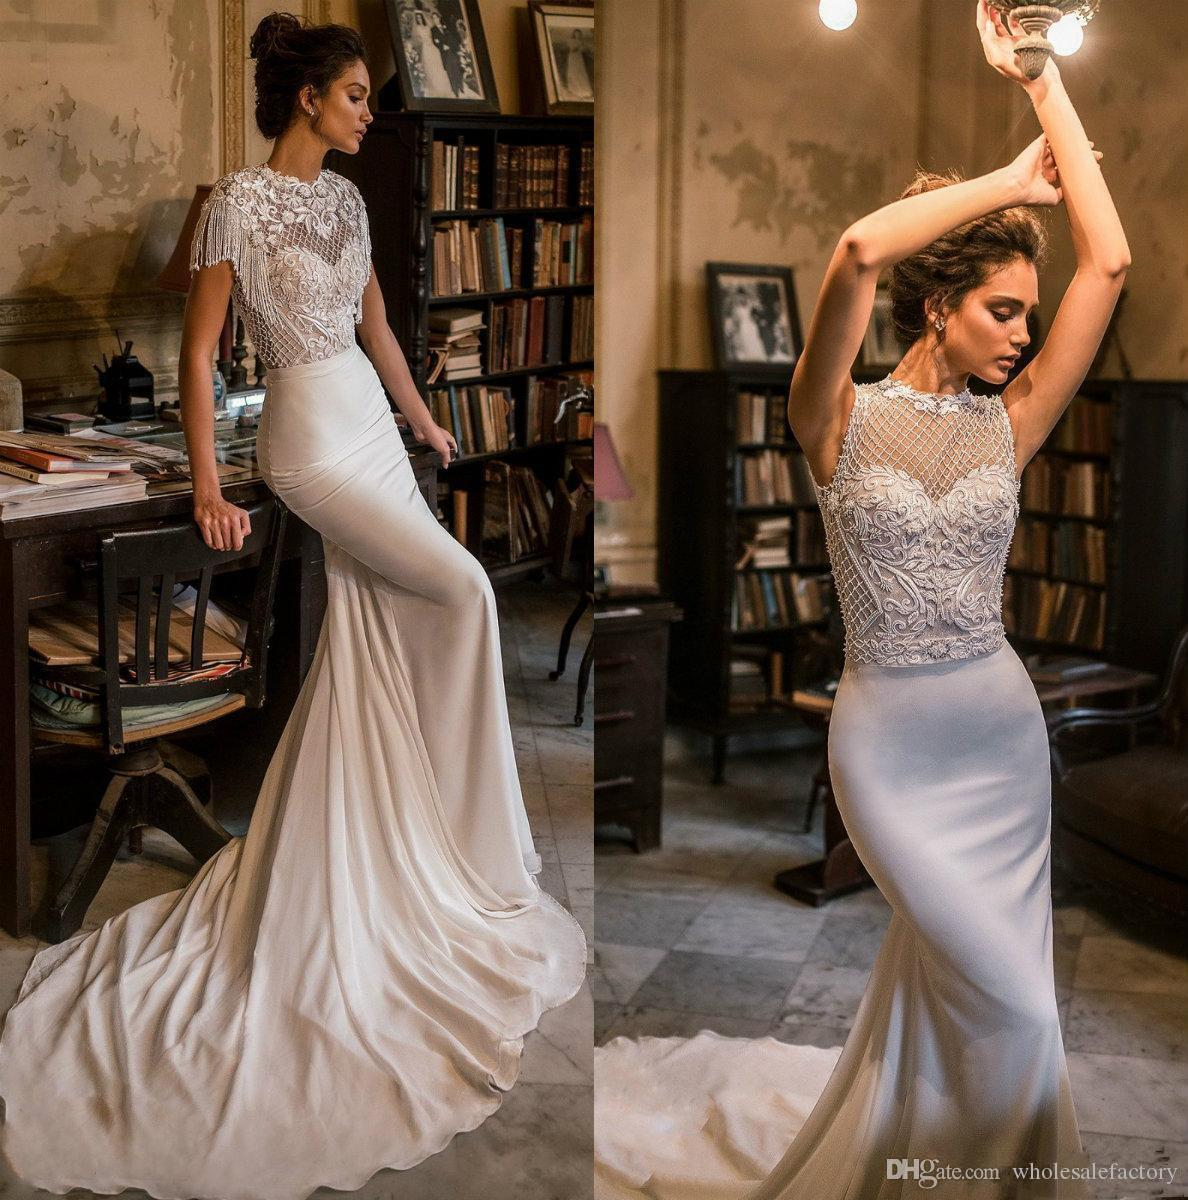 2019 Julie Vino Mermaid Wedding Dresses Jewel Neck Hollow Back Lace Satin Beading Beaded Tassel Court Train Wedding Bridal Gowns